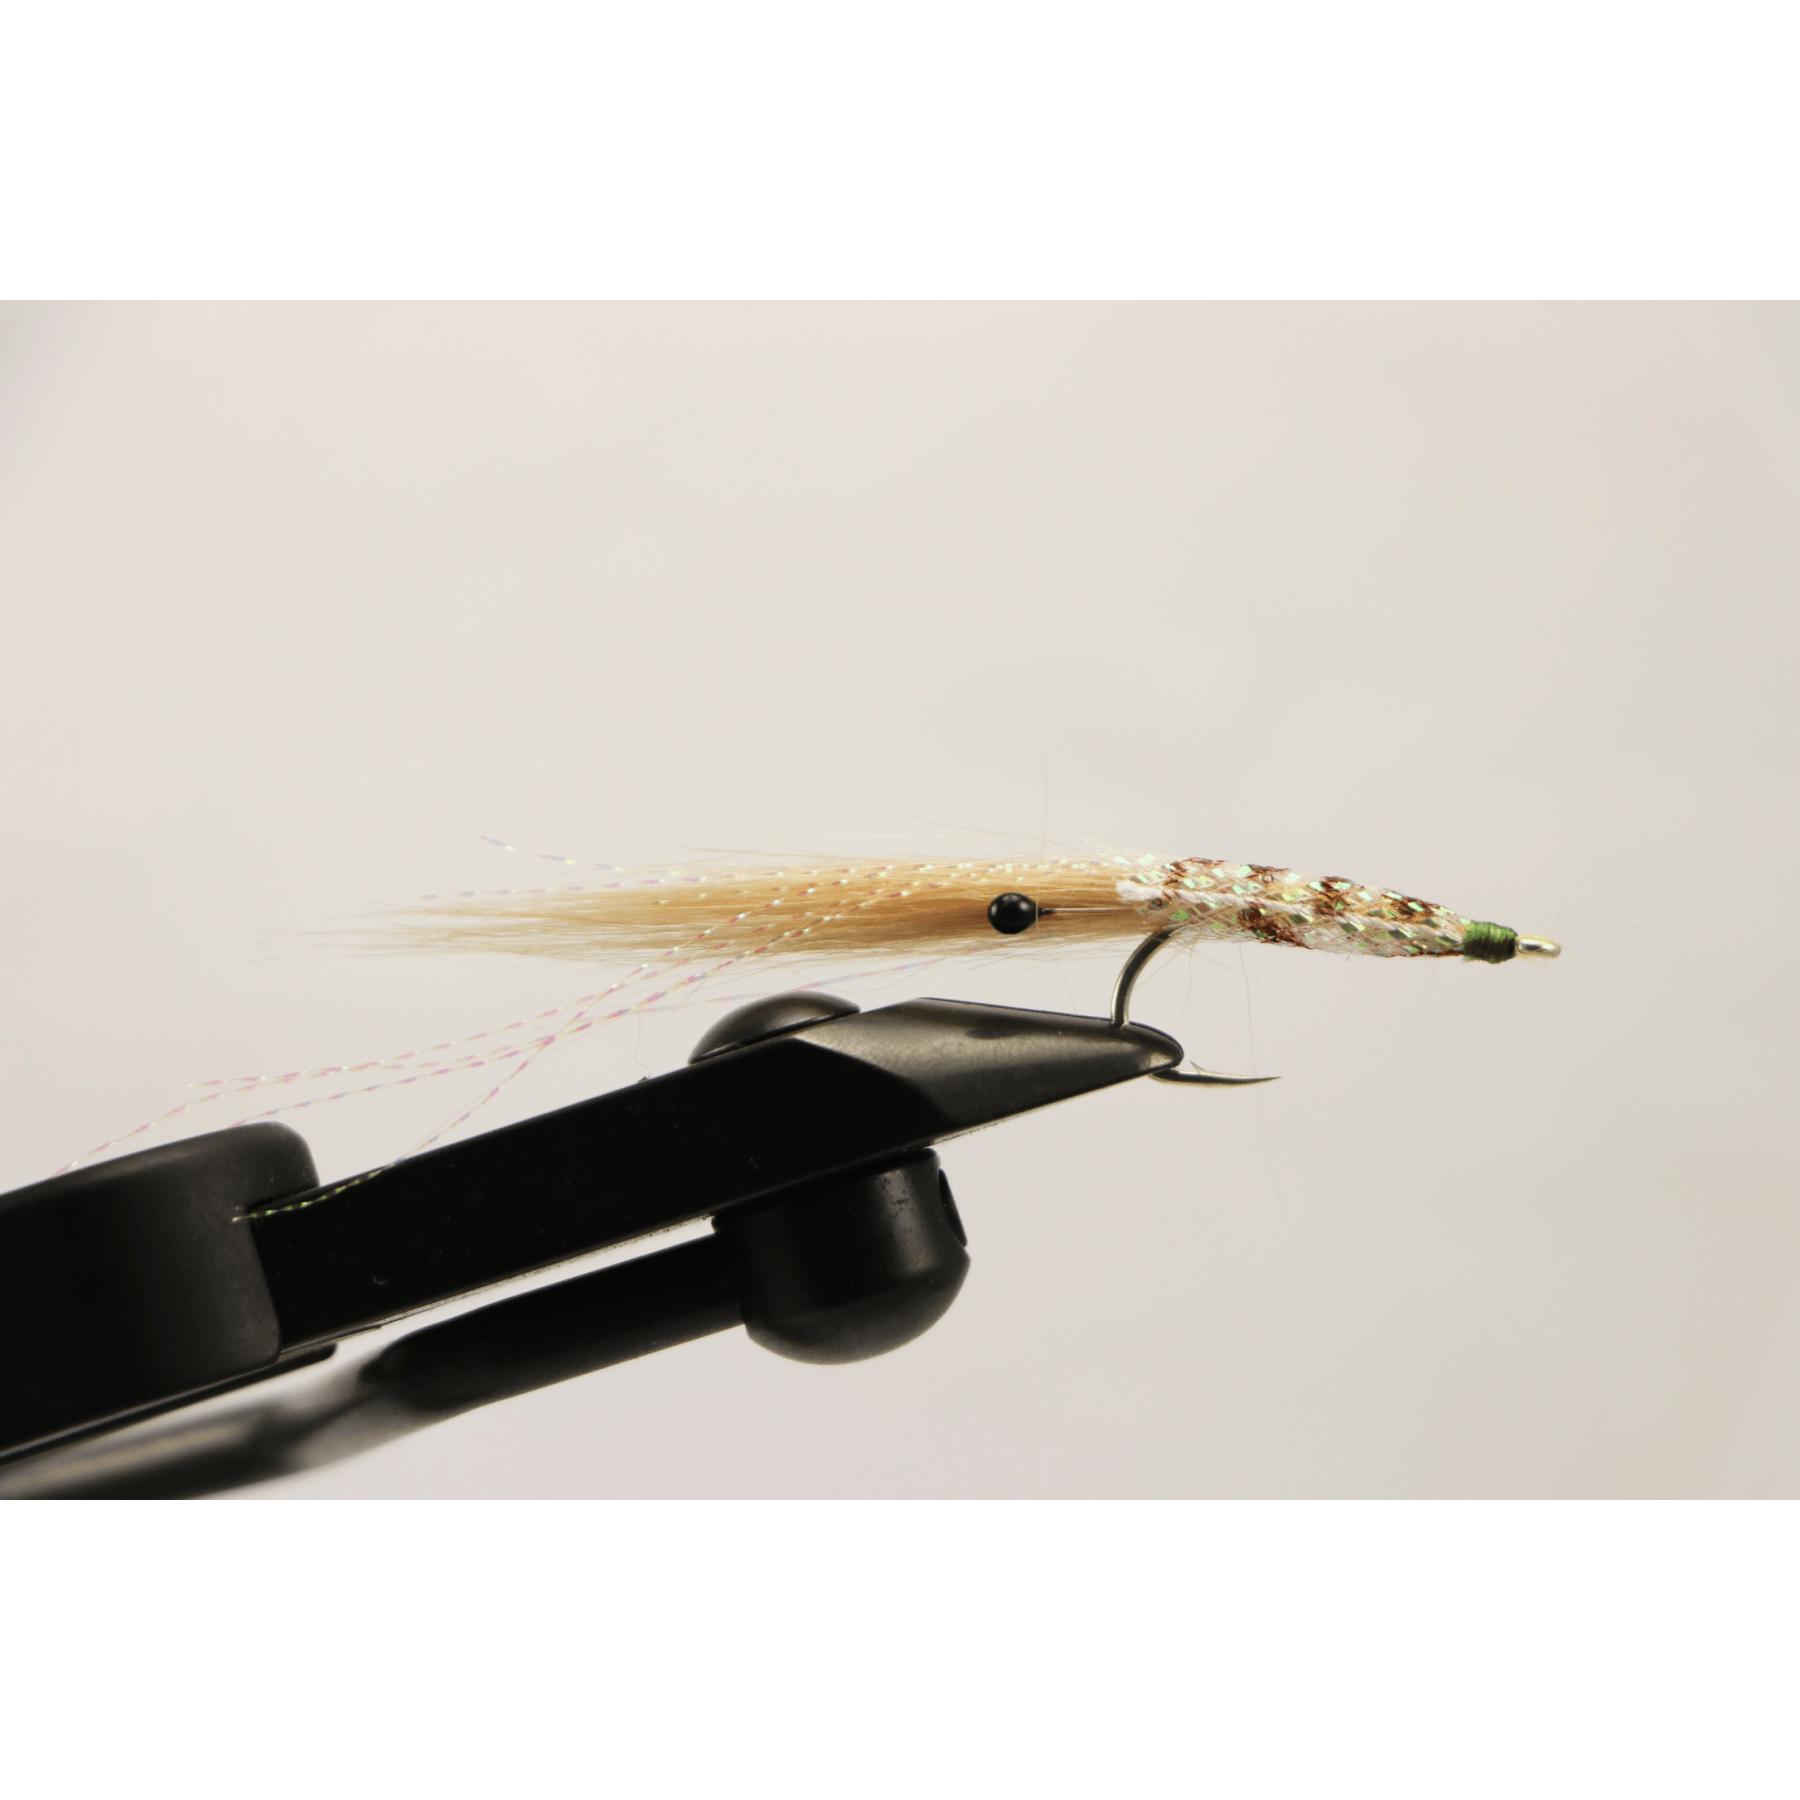 Guide Flies Micro-Squid